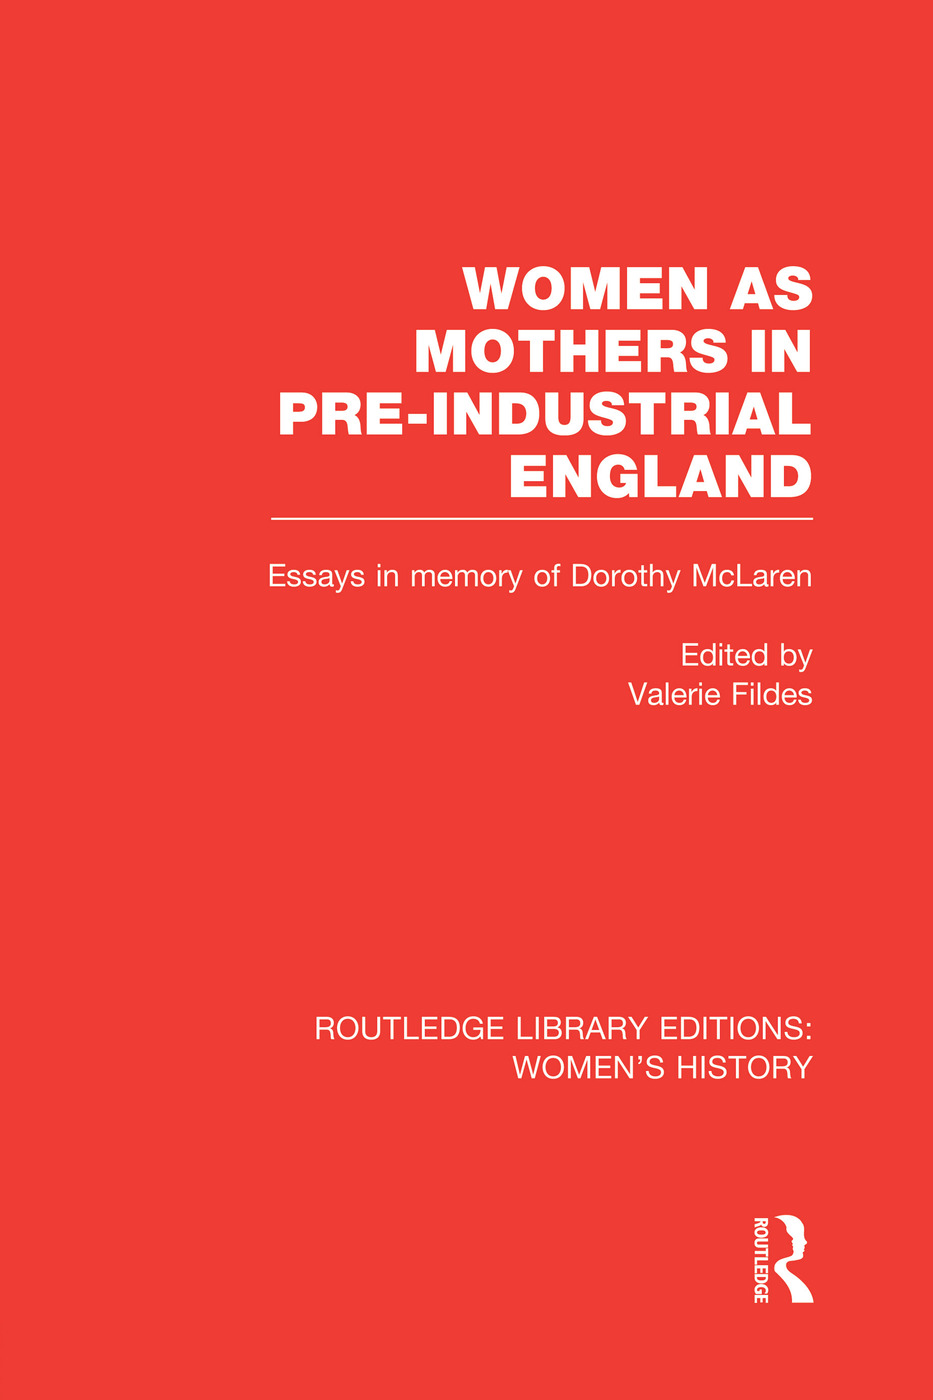 Women as Mothers in Pre-Industrial England book cover